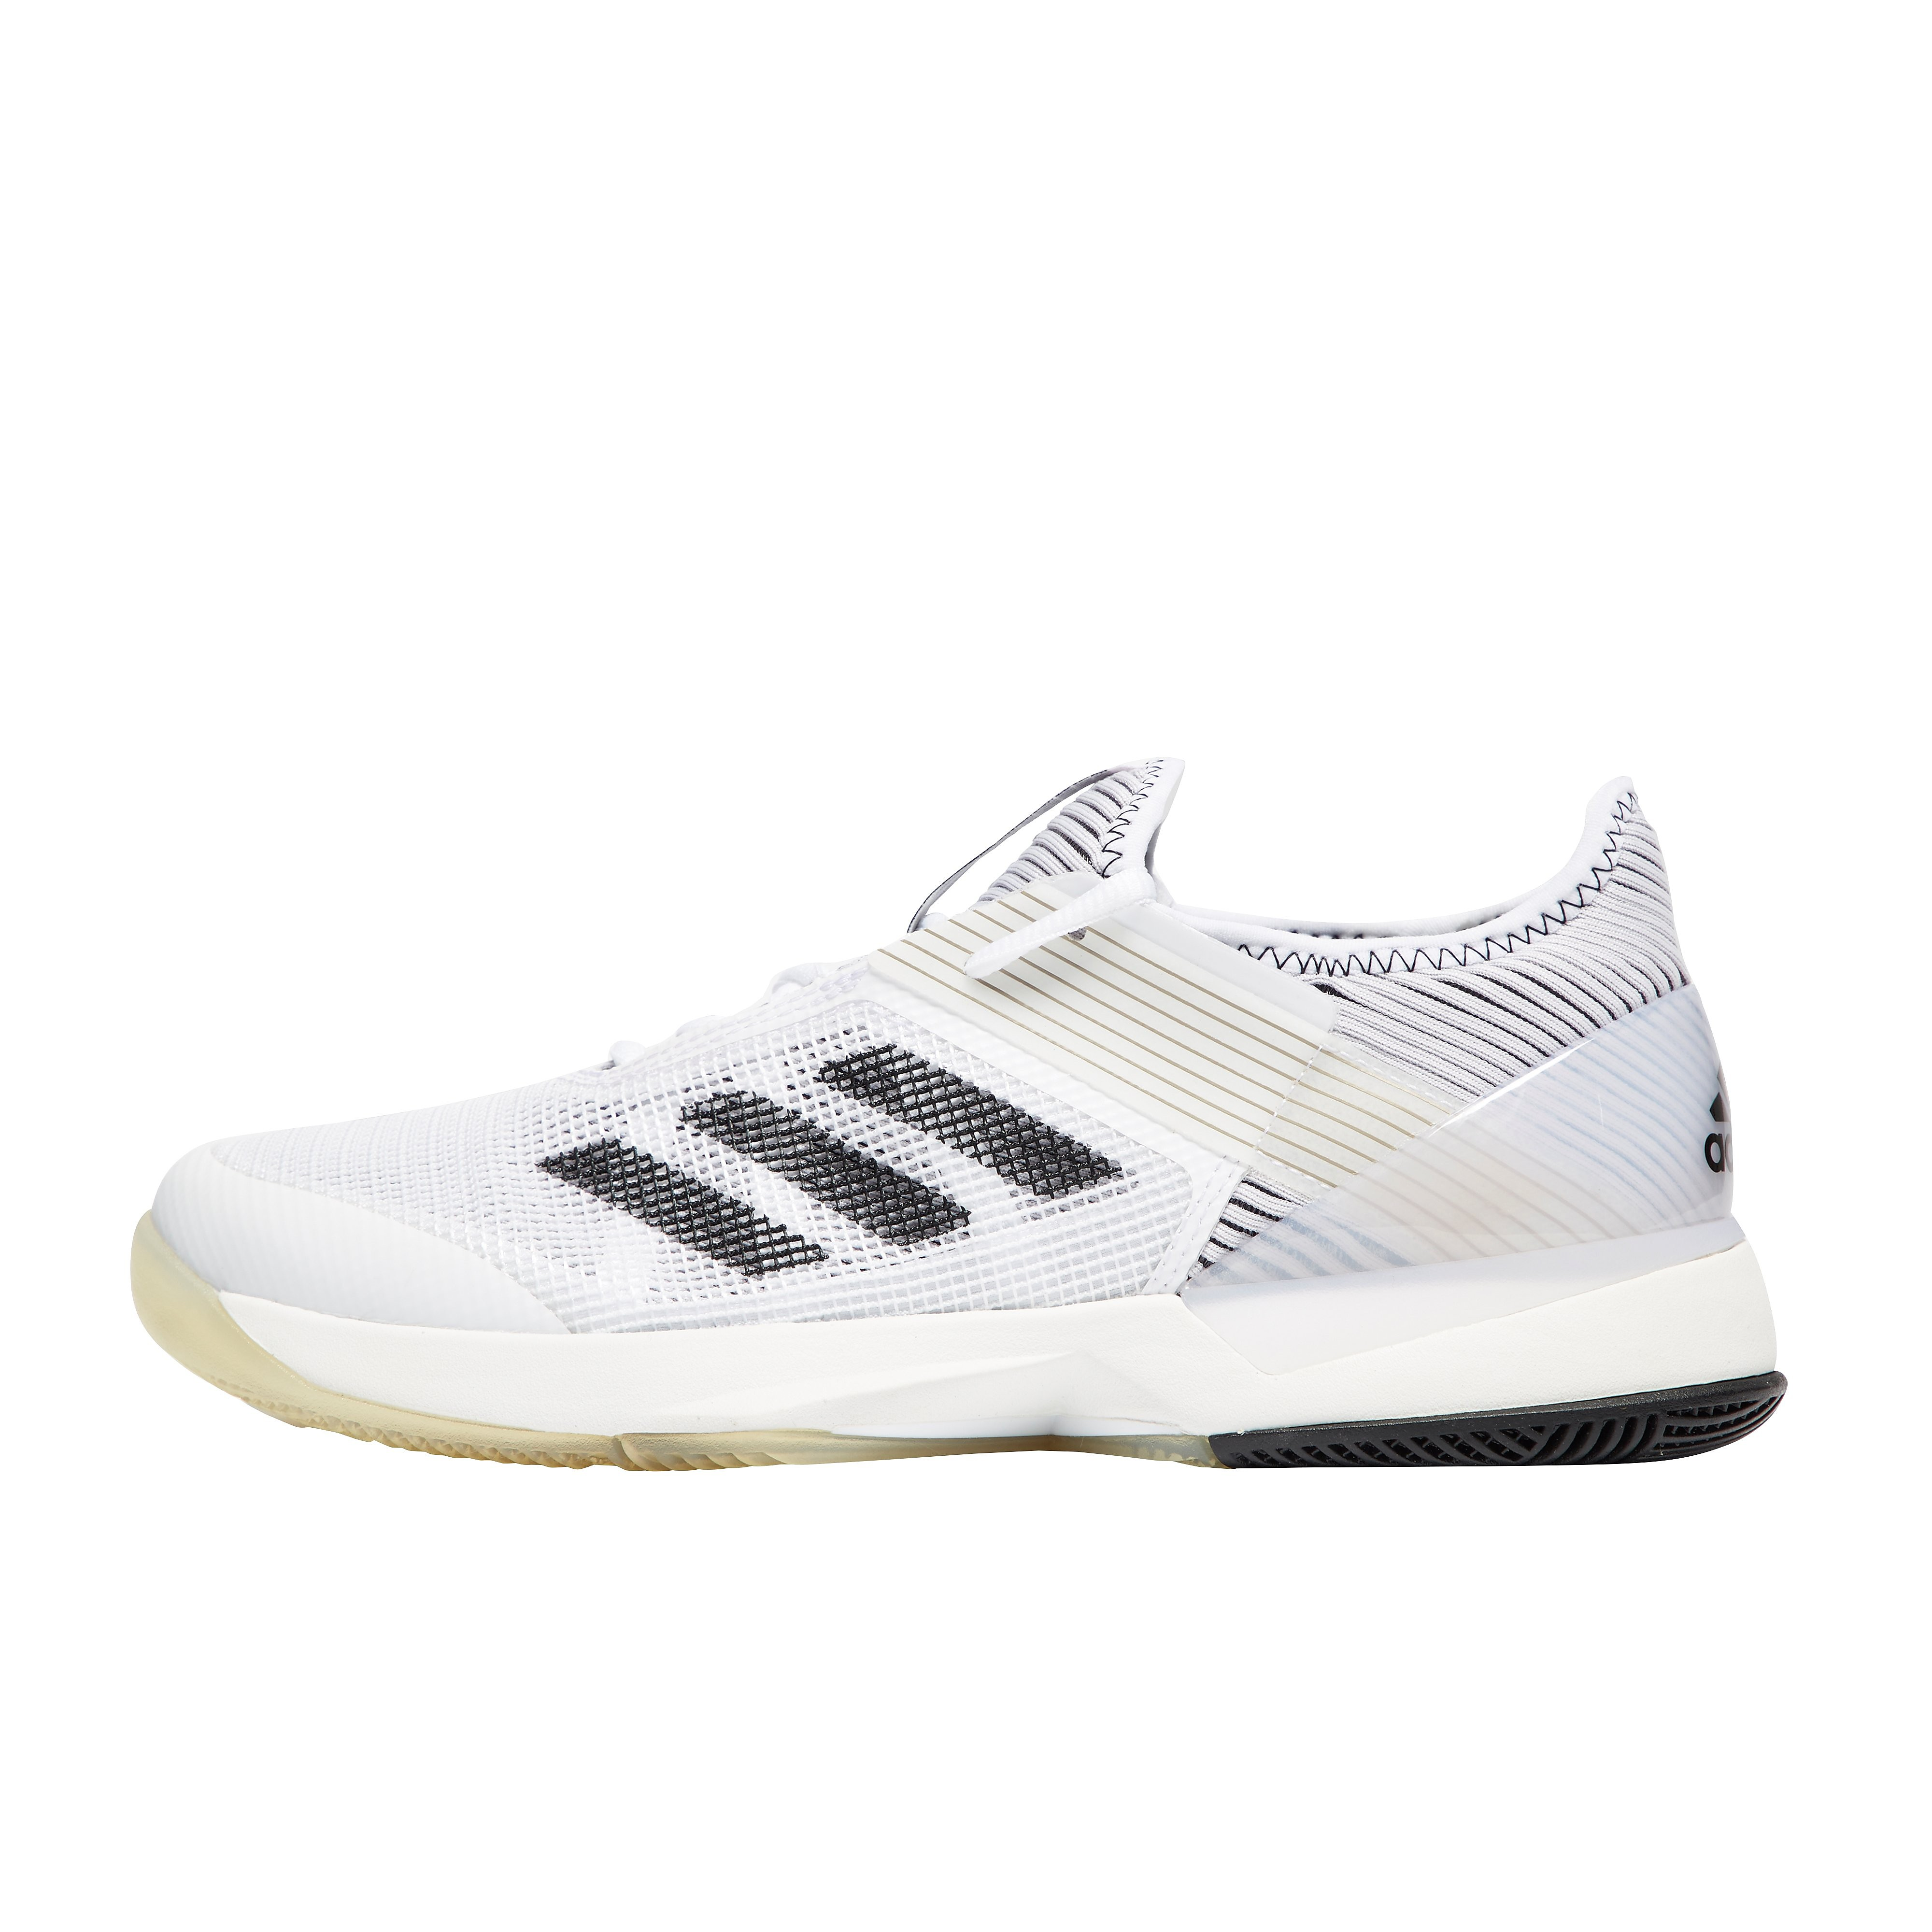 adidas ADIZERO UBERSONIC 3.0 WOMEN'S TENNIS SHOES